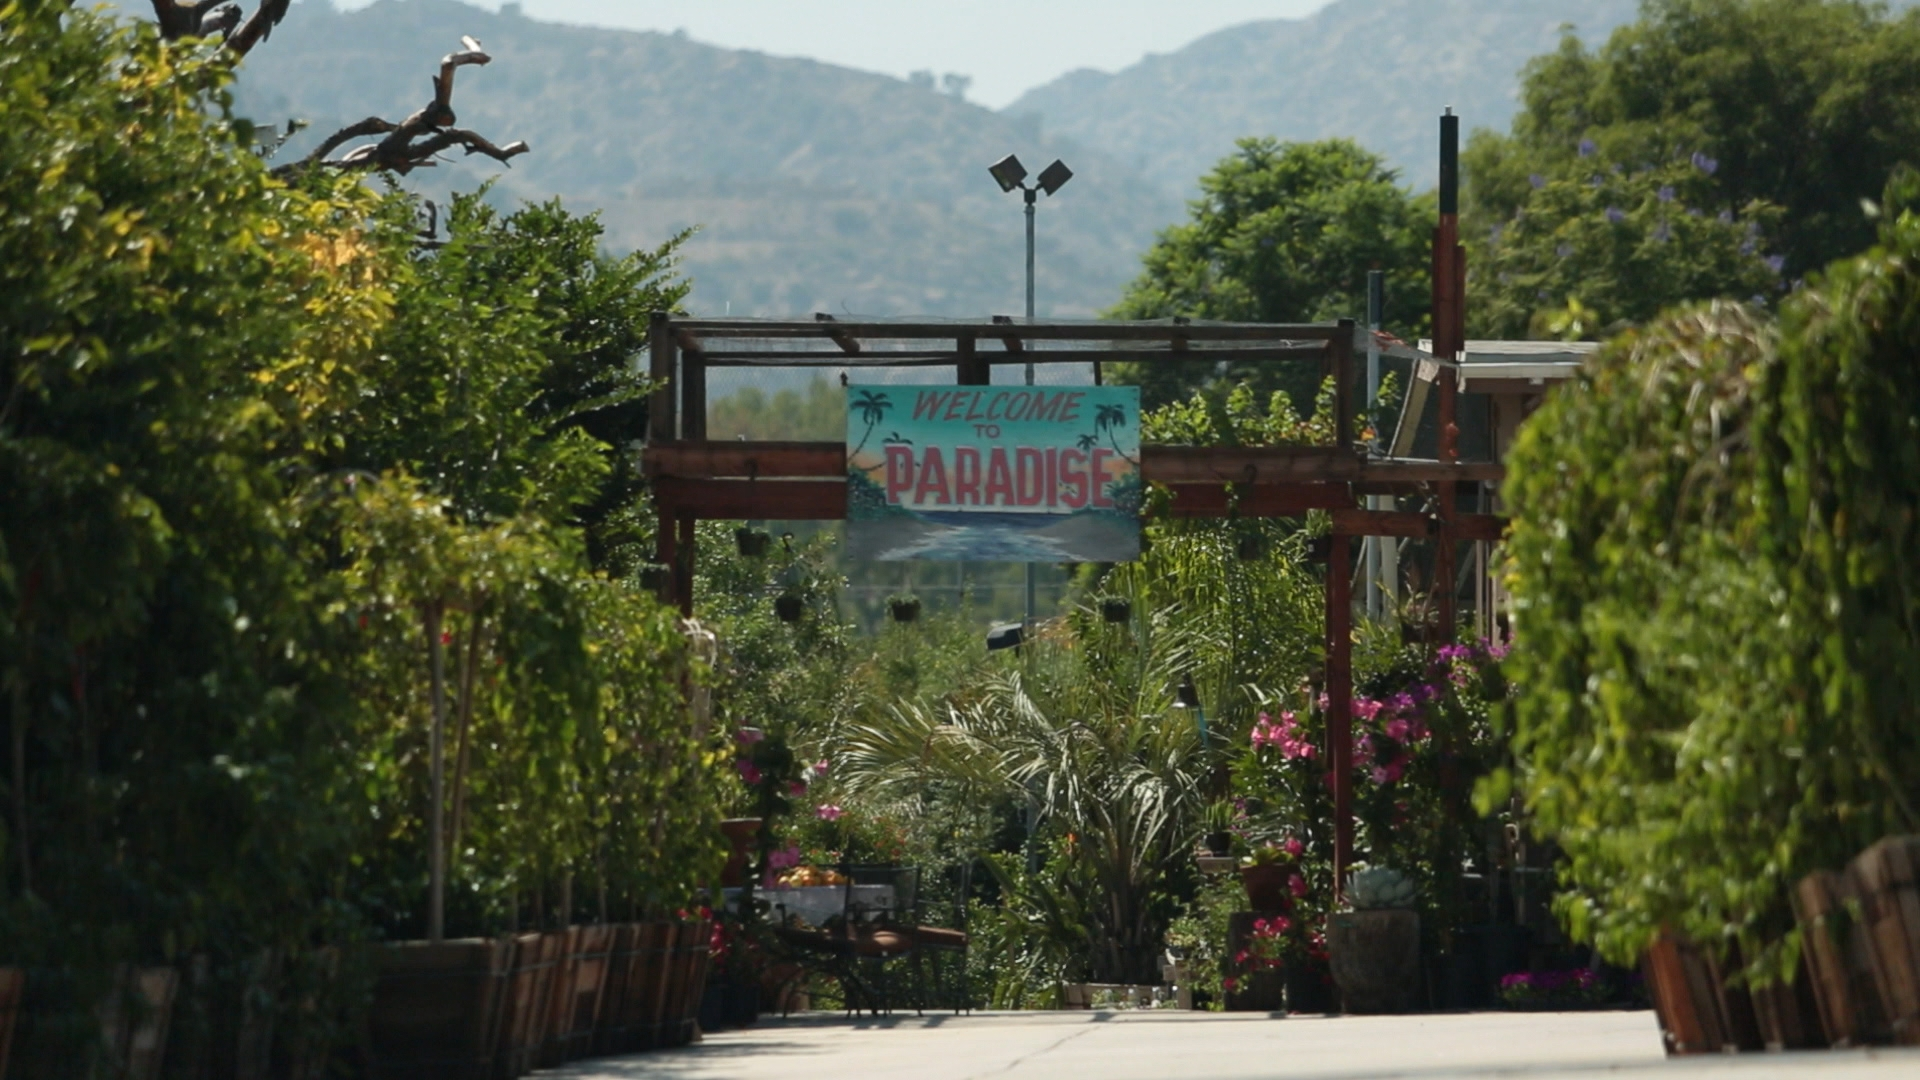 PARADISE NURSERY - Fruit Trees for sale Buy avocado and citrus trees